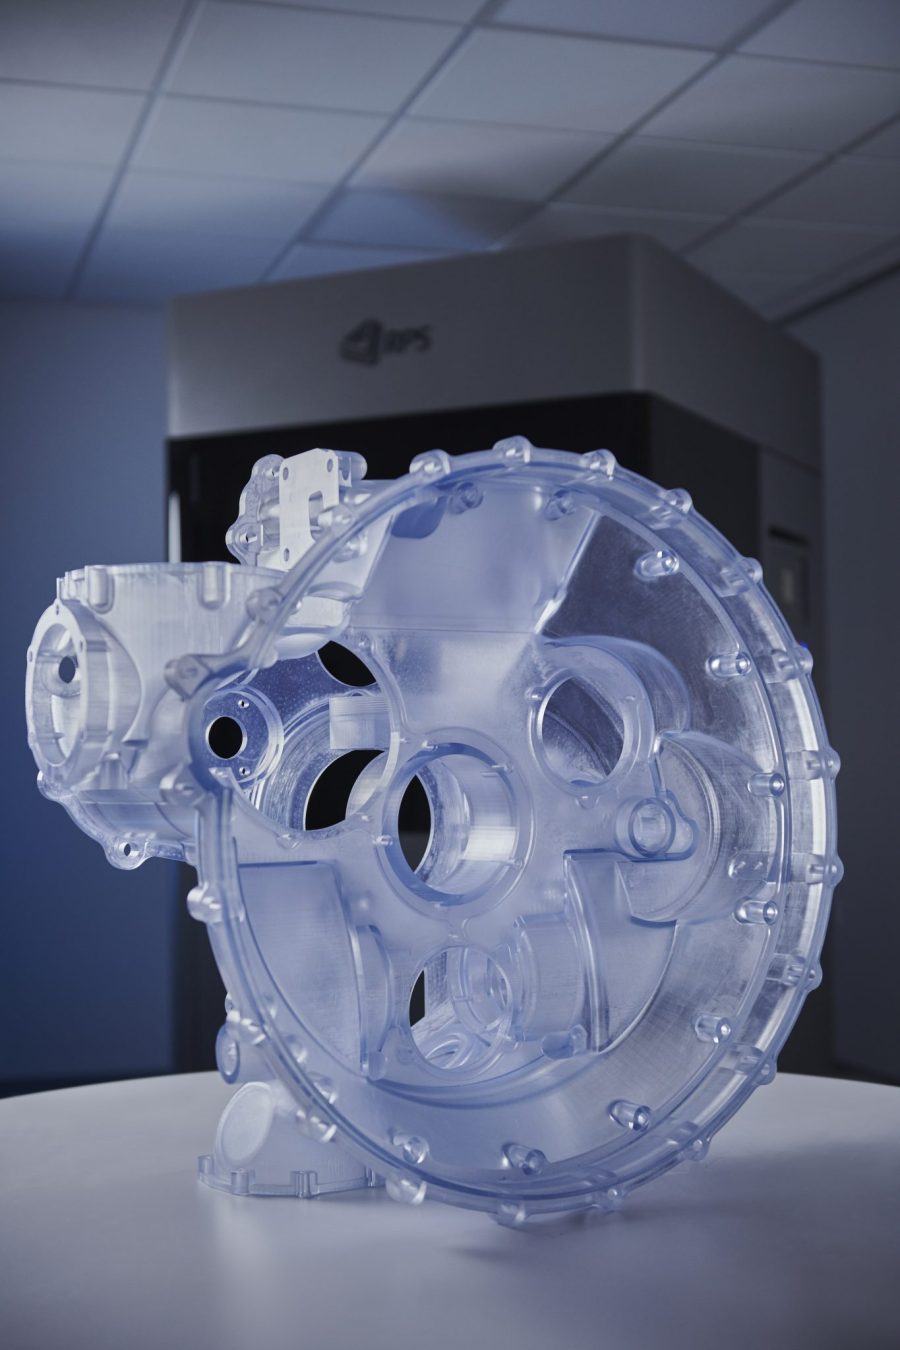 Gearbox model created on the NEO800. Photo via RPS.